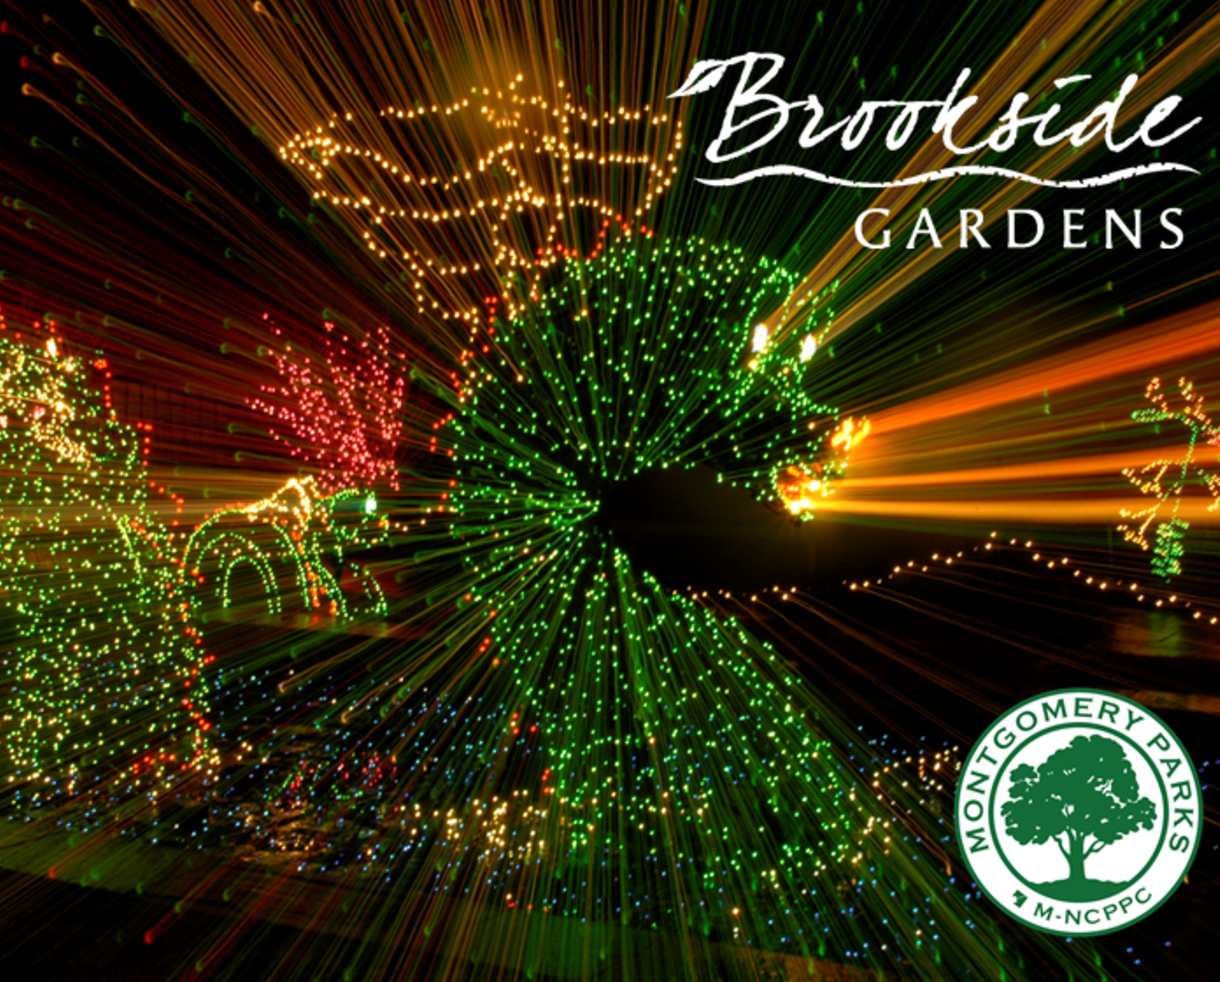 $15 for Garden of Lights Admission for 1 Car at Brookside Gardens - Monday thru Thursday, select dates ONLY